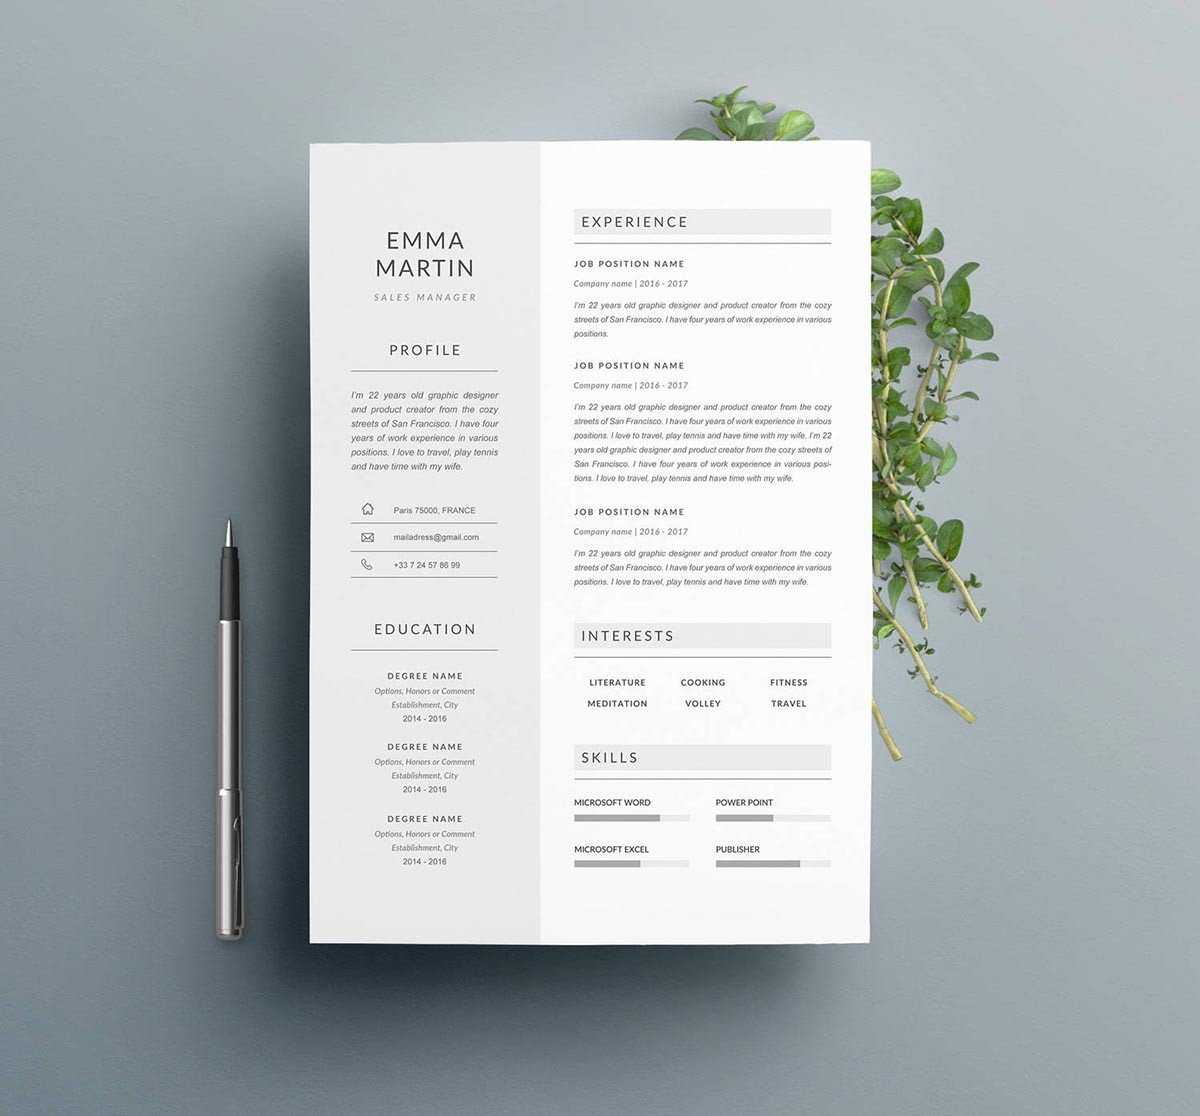 Modern Resume Template For Indesign: 13+ Photoshop, Illustrator, & InDesign Resume Templates